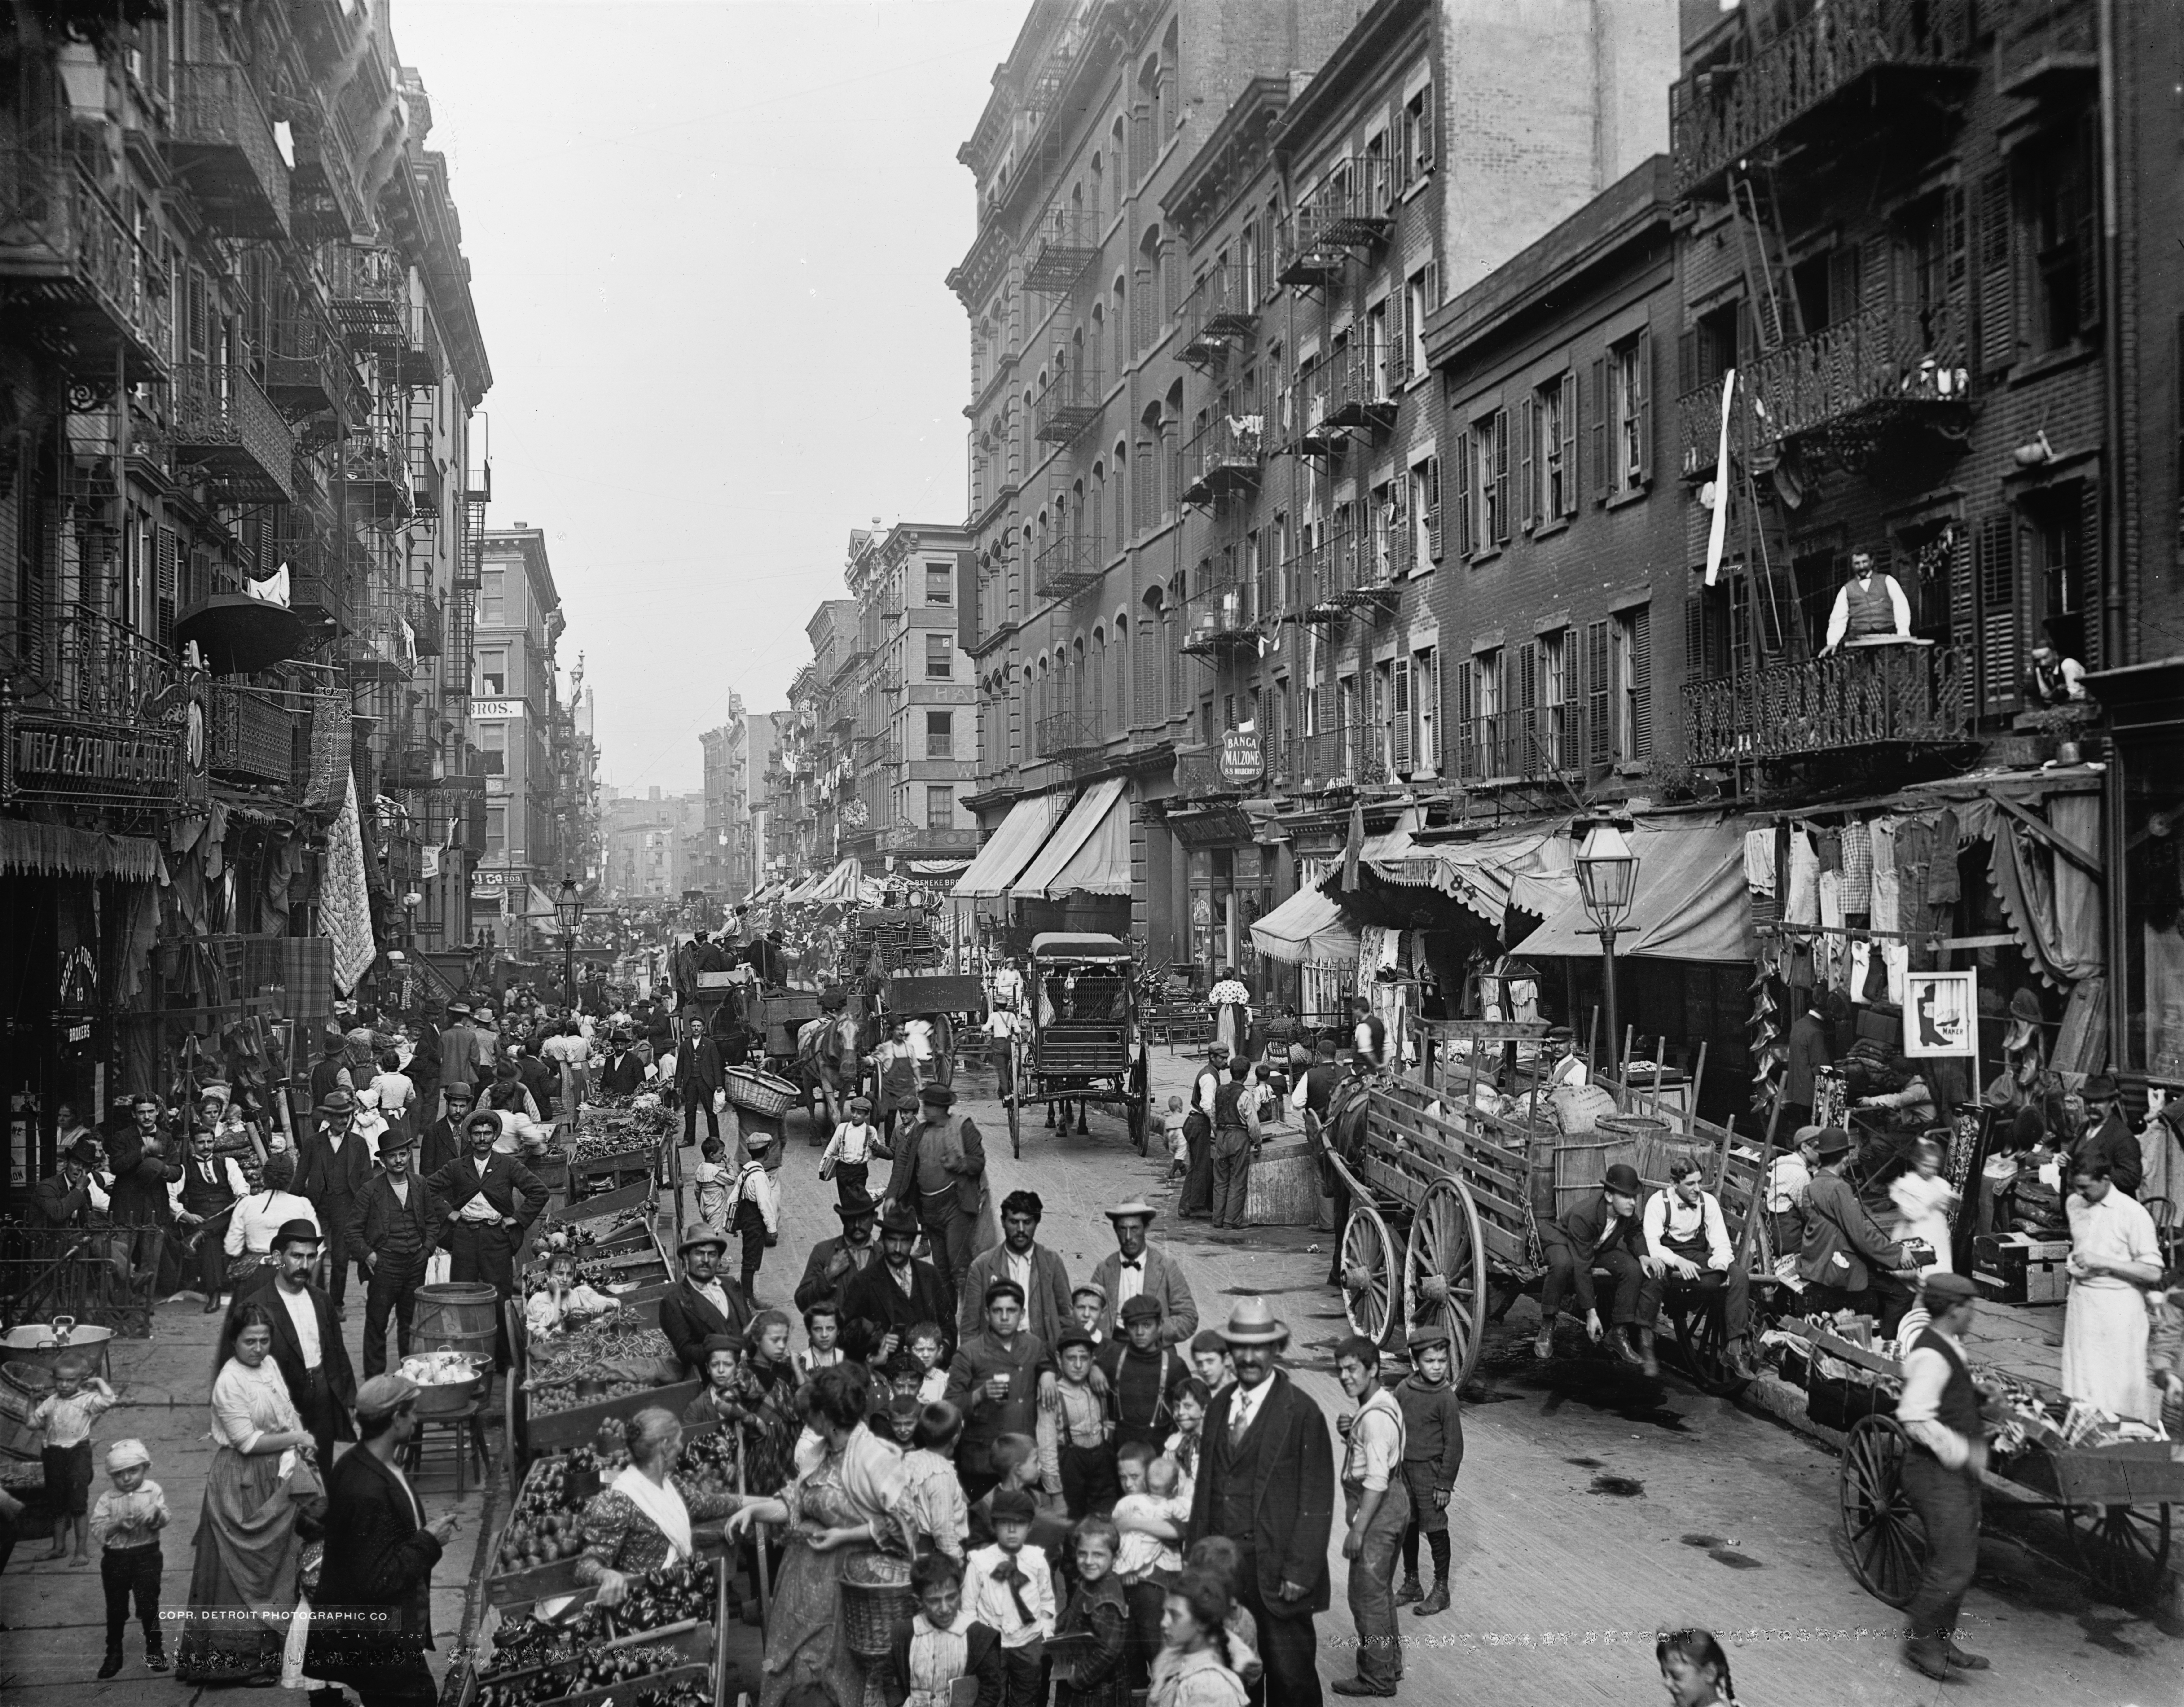 urban living conditions in the late 1800s